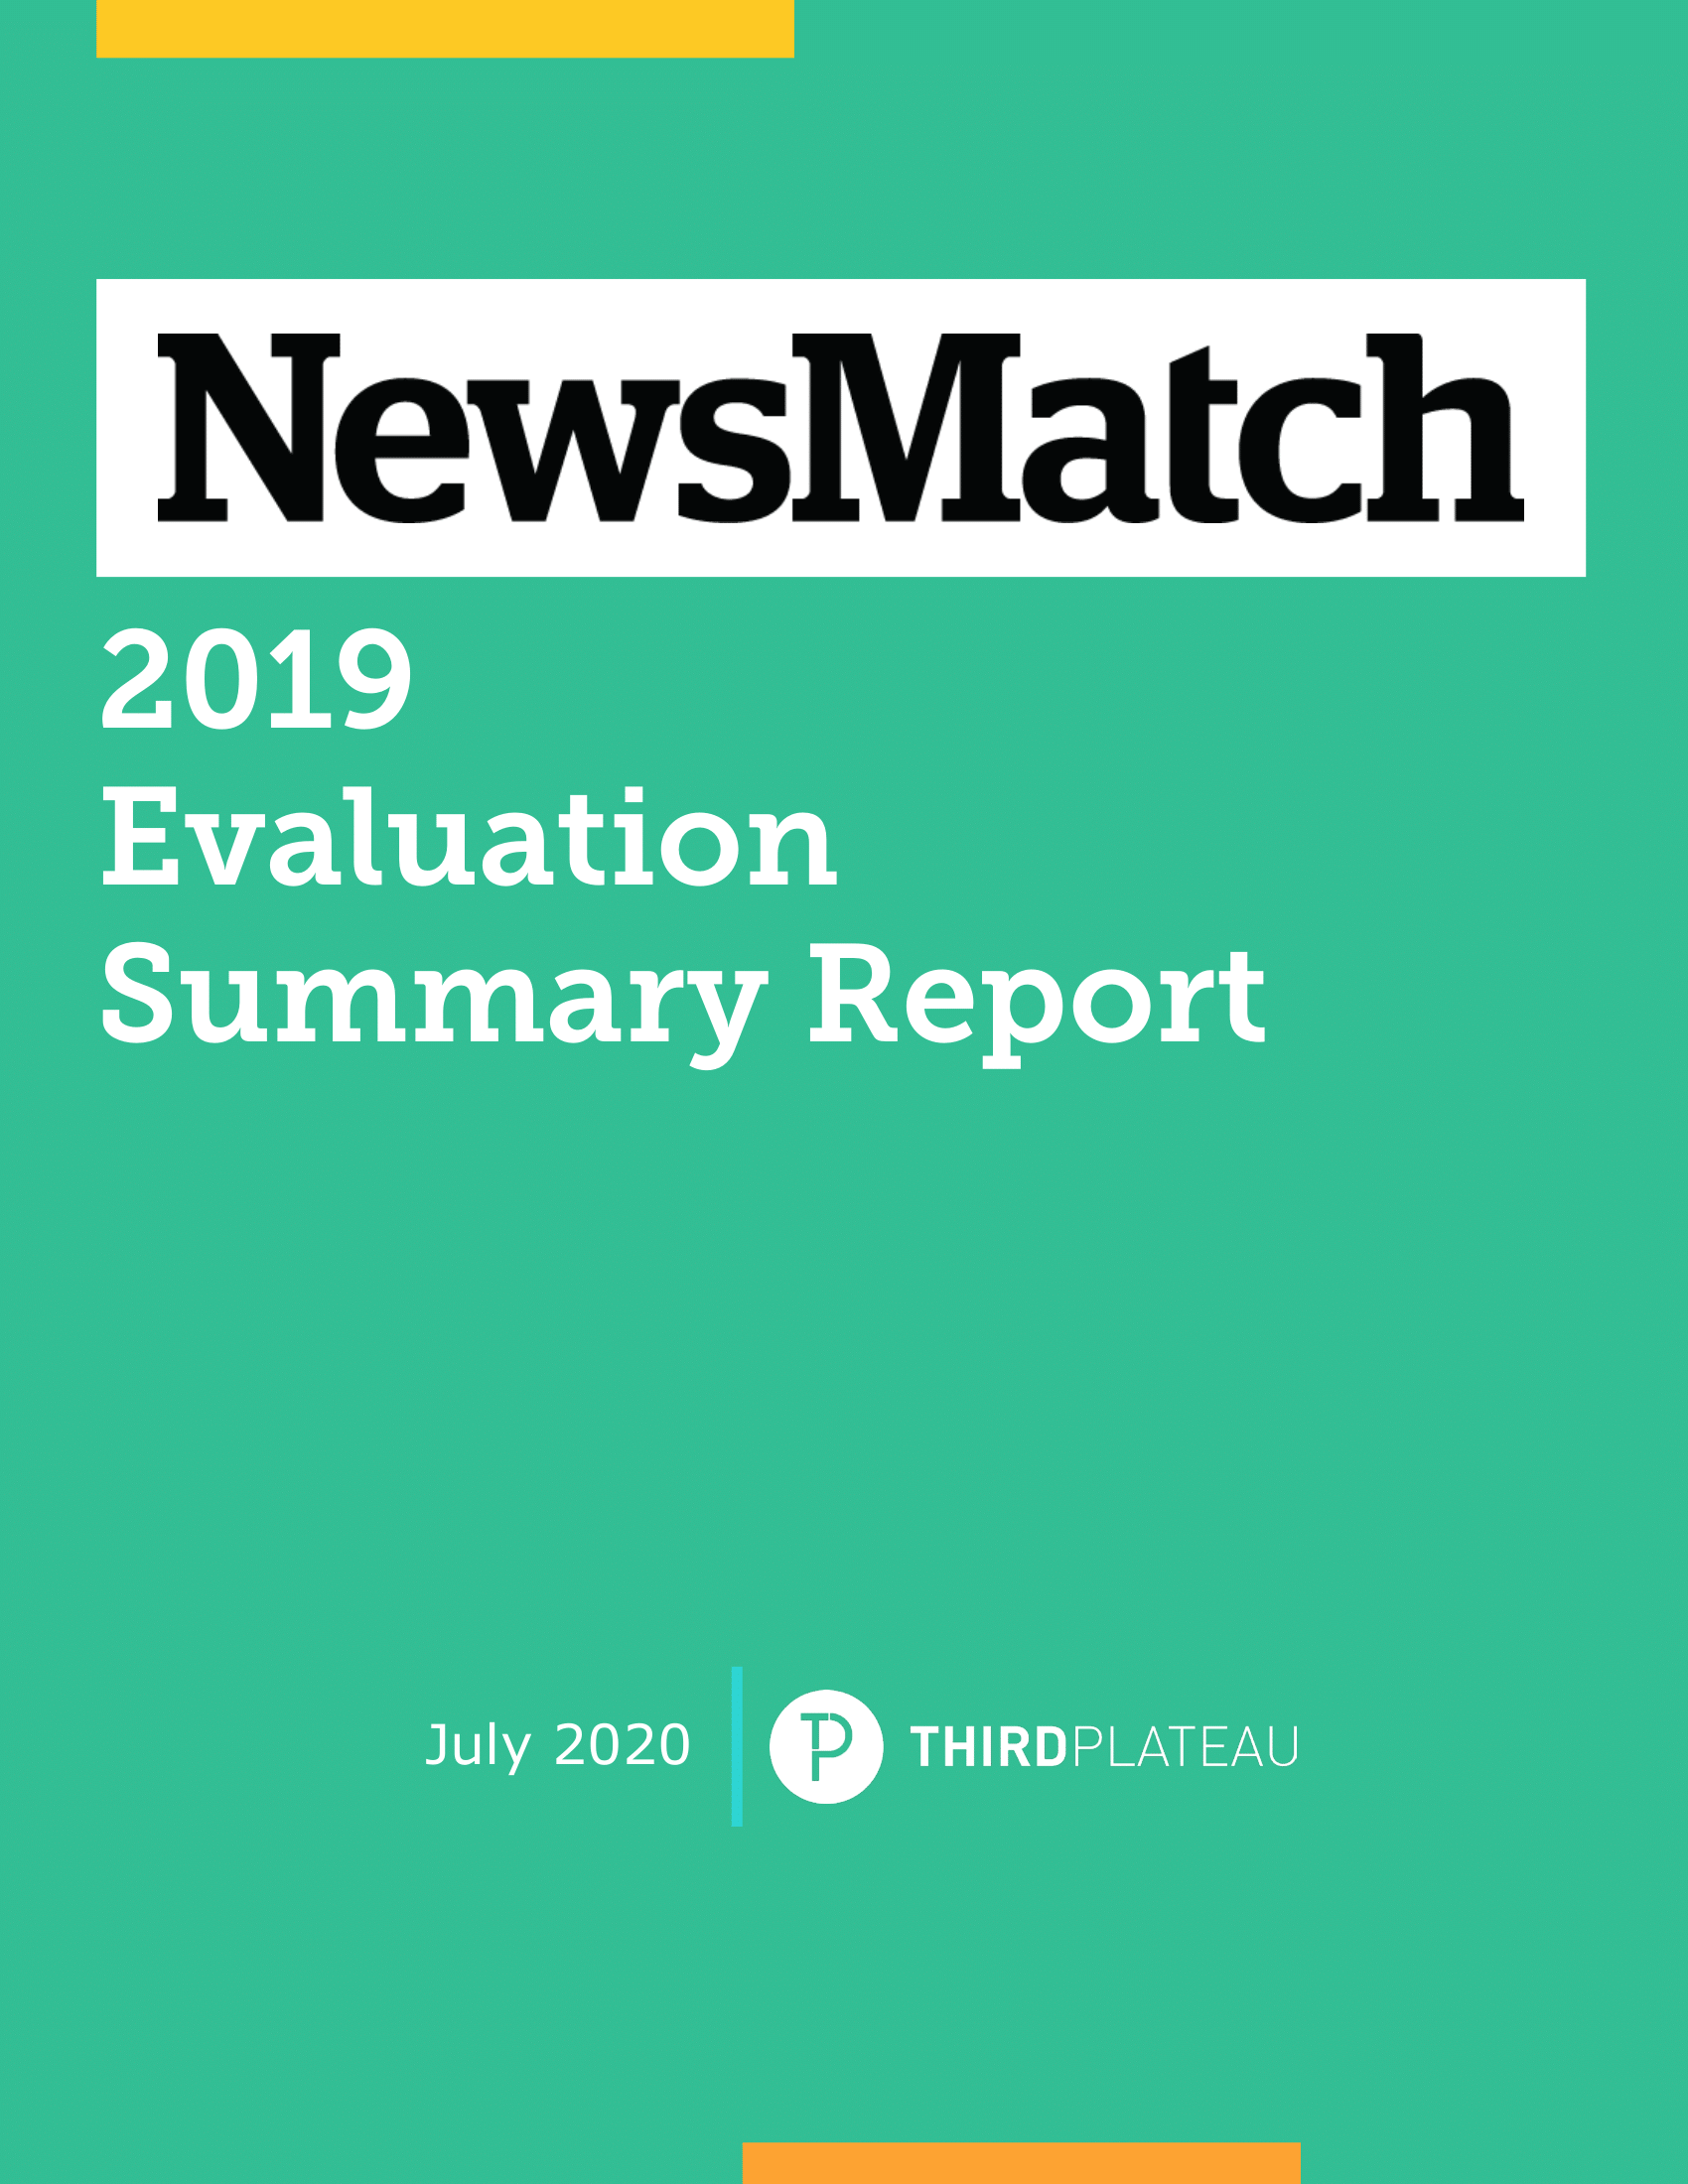 NewsMatch 2019 Evaluation Summary Report